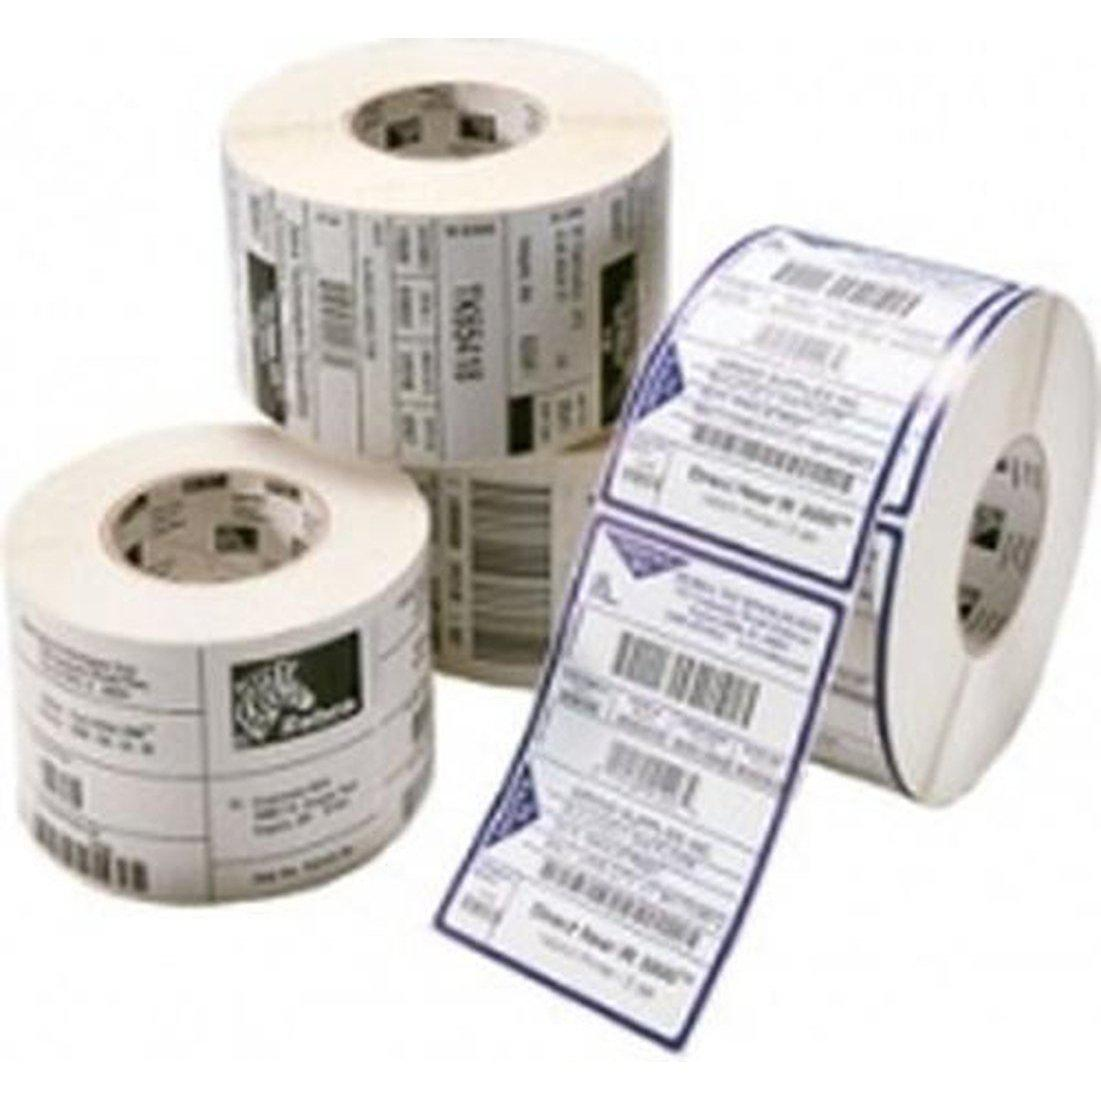 Zebra Z-Select 2000T Thermal Transfer Paper Labels 102mm x 203mm, White | 880134-203